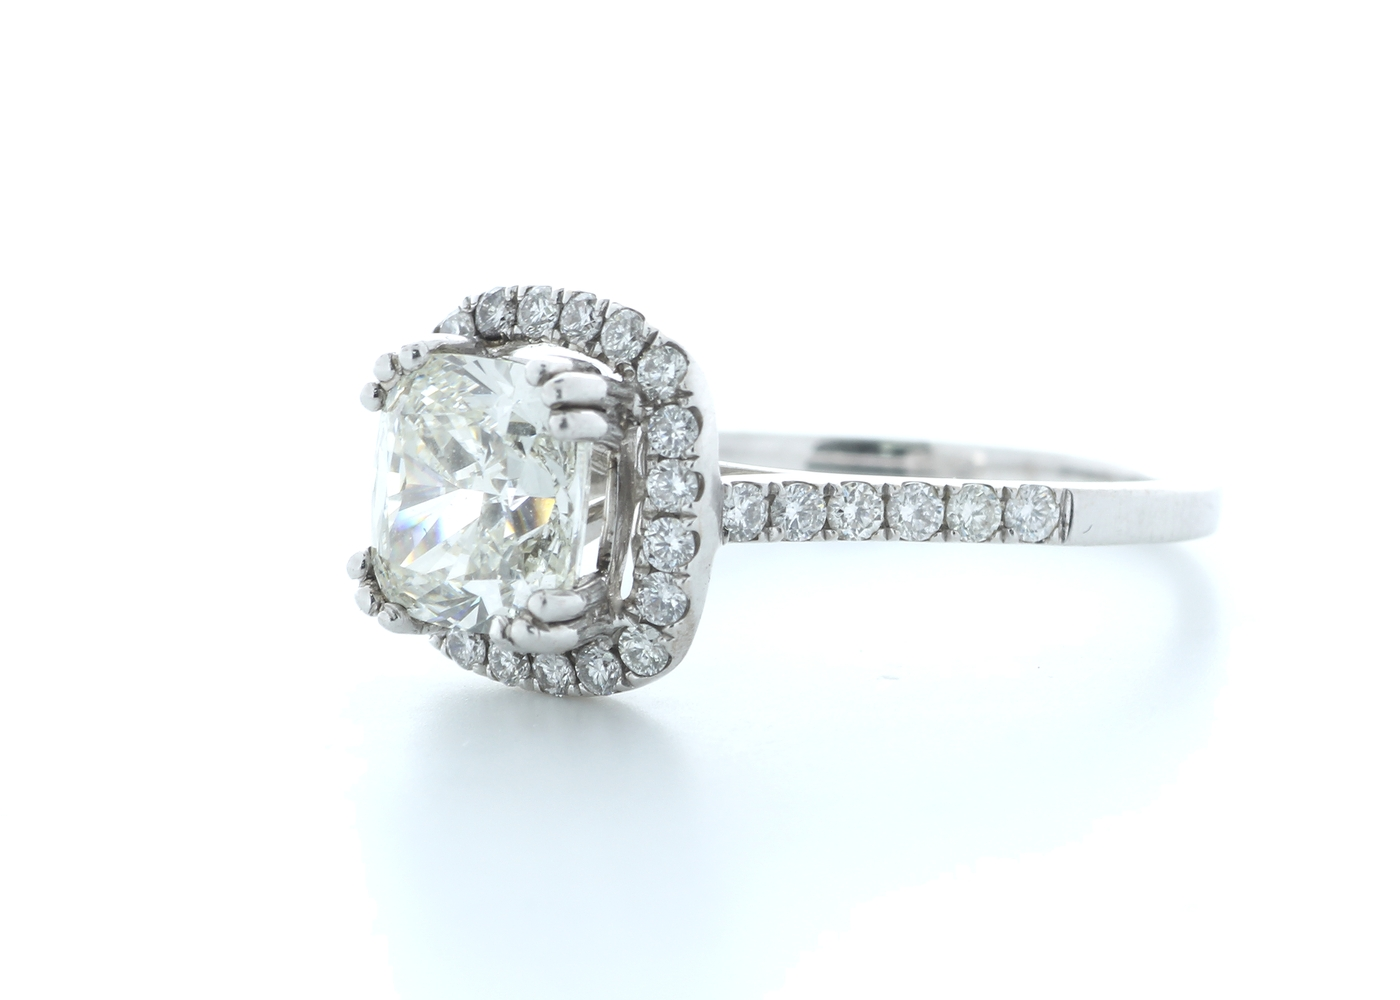 18ct White Gold Single Stone With Halo Setting Ring 2.63 (2.13) Carats - Image 2 of 5